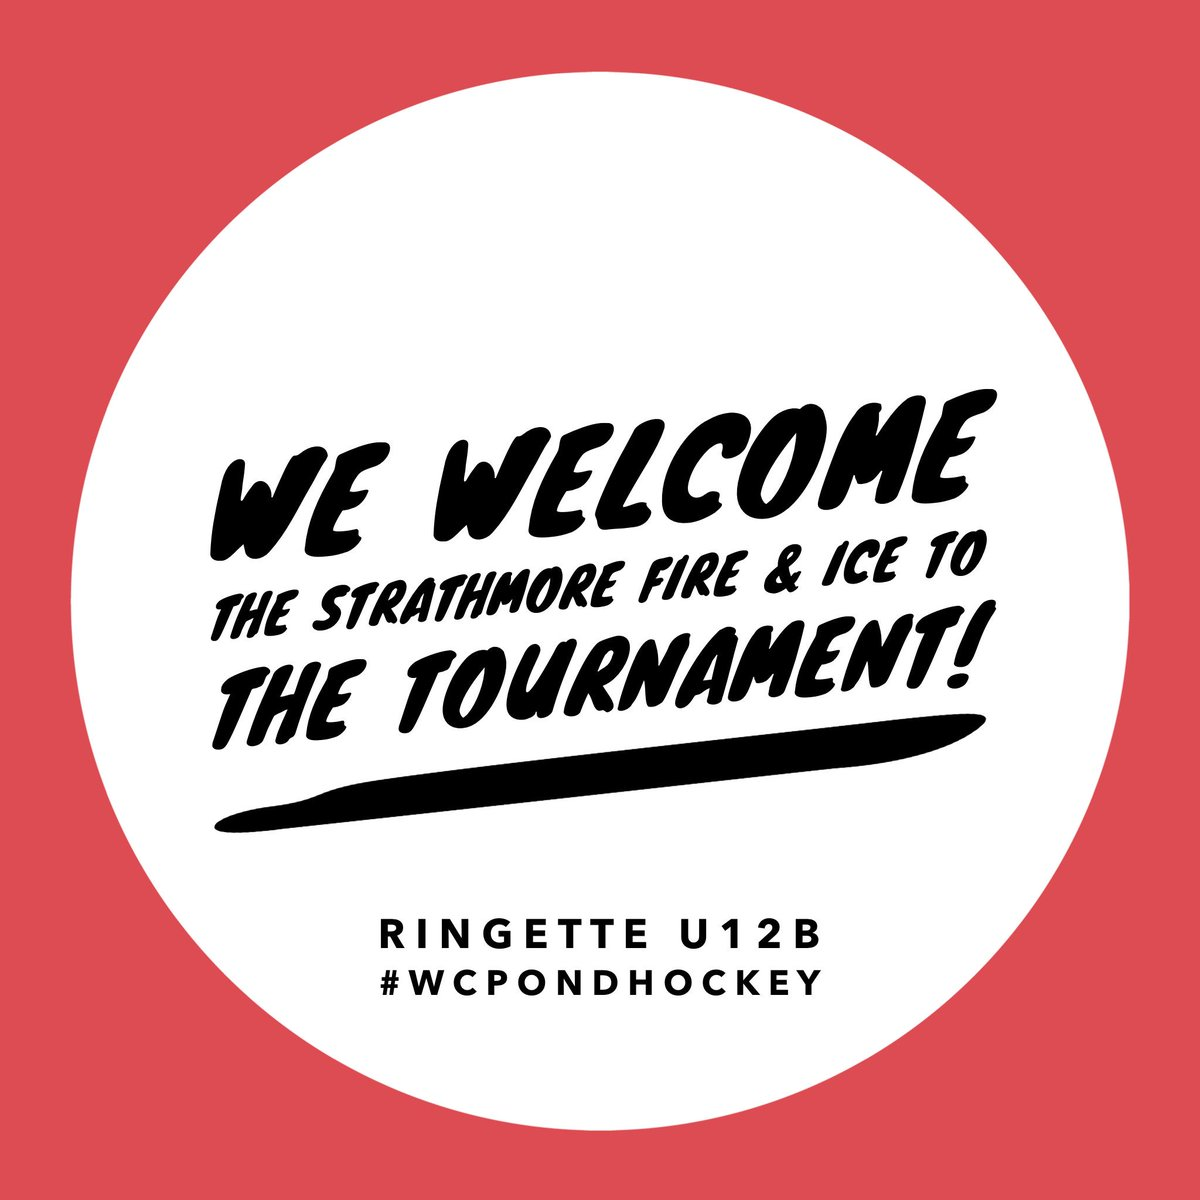 Welcome to the Strathmore Fire & Ice! We're thrilled to have you aboard in the Ringette U12B division! #strathmoreringette #fireandice #pondhockey #wcpondhockey #ringettetournament #hockeytournament #outdoorhockey #hockey #ringette @HockeyYyc #hockeyfunpic.twitter.com/F2q70zjUbQ